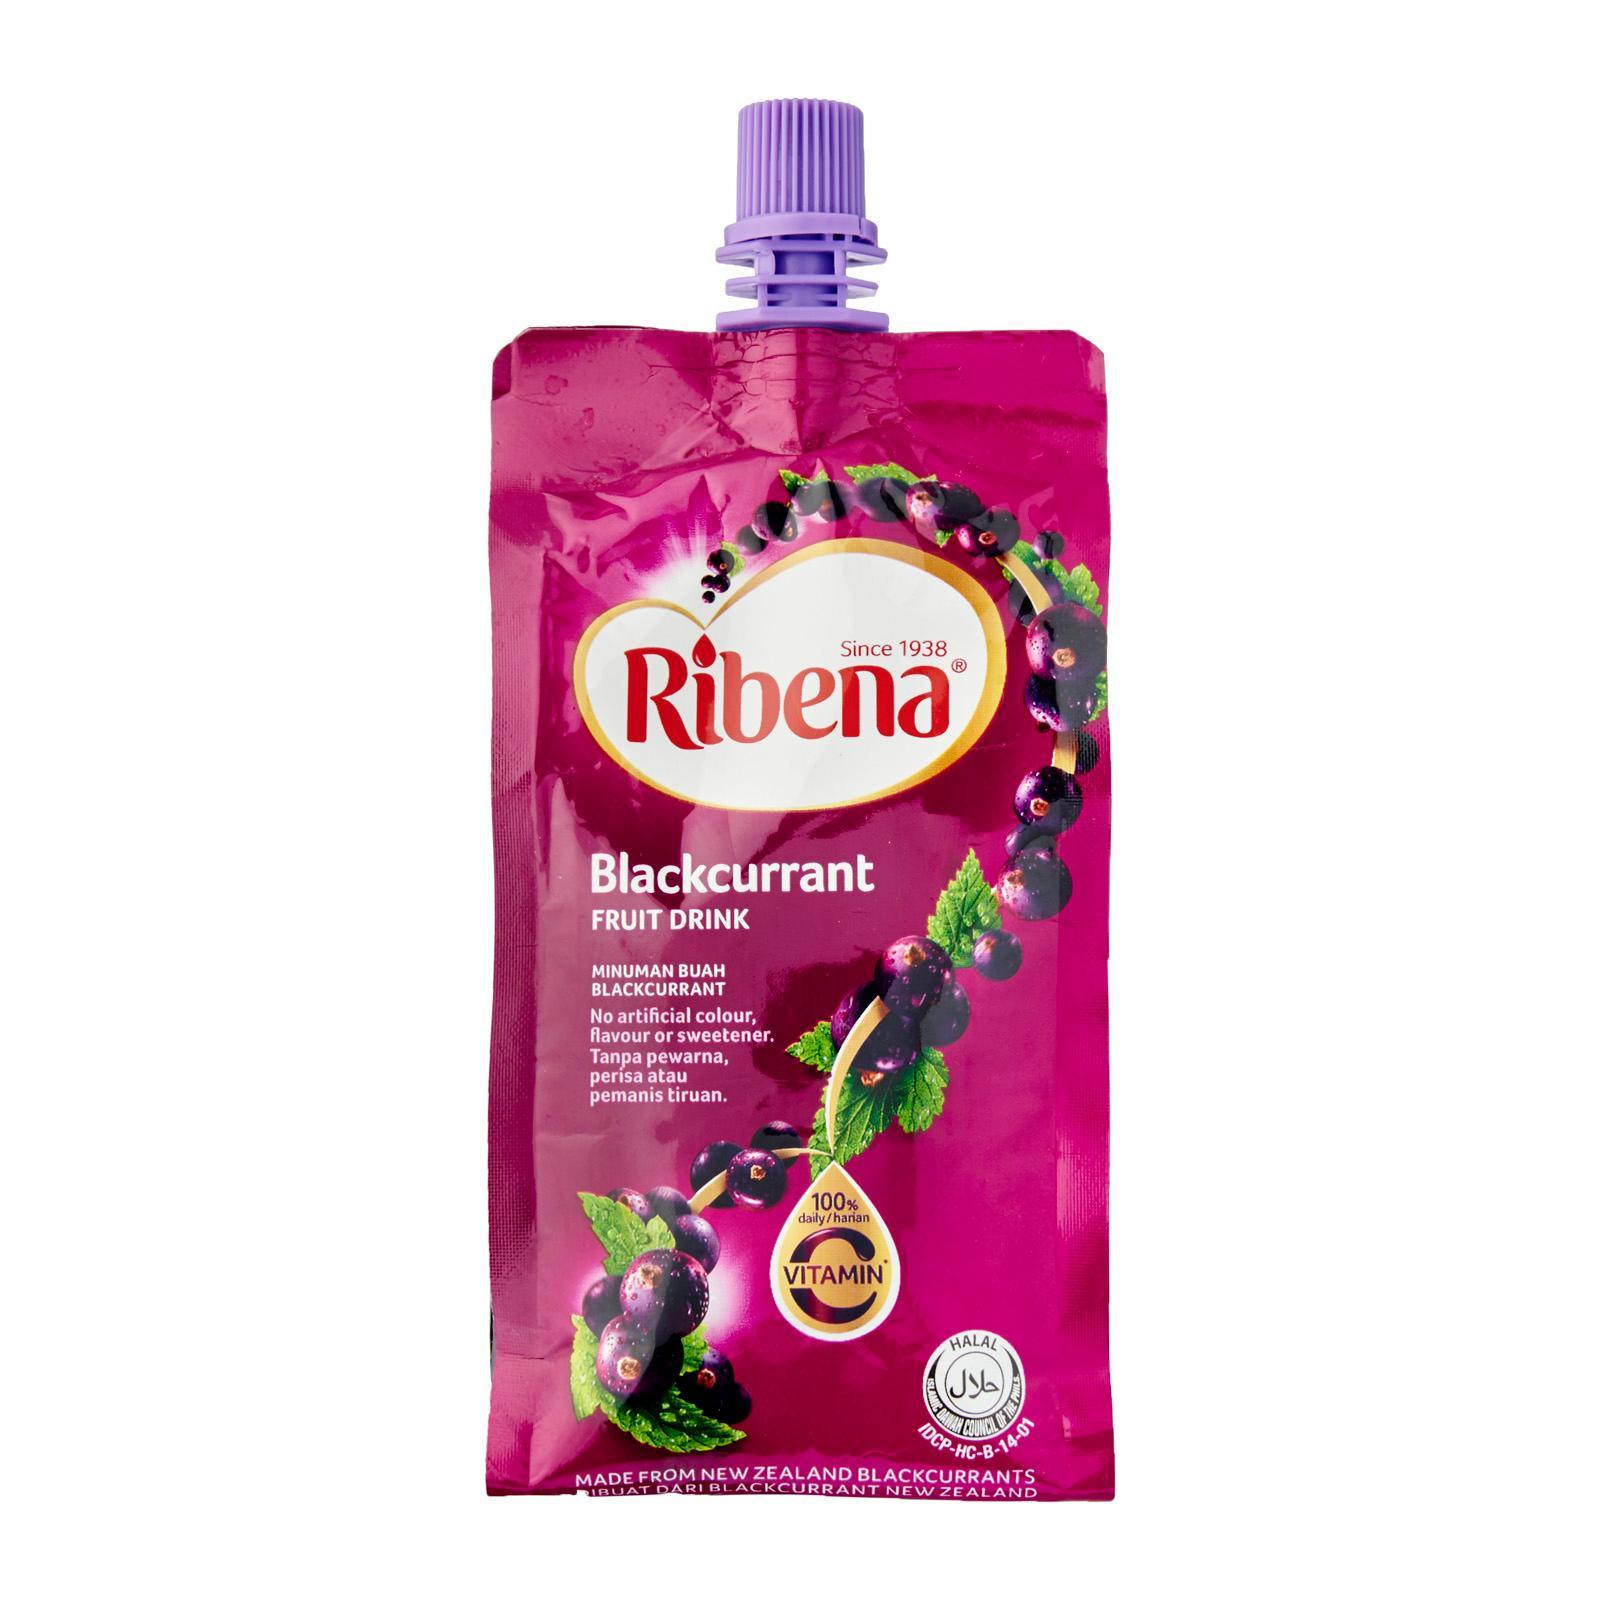 Ribena Cheerpack Blackcurrant and Strawberry Fruit Drink